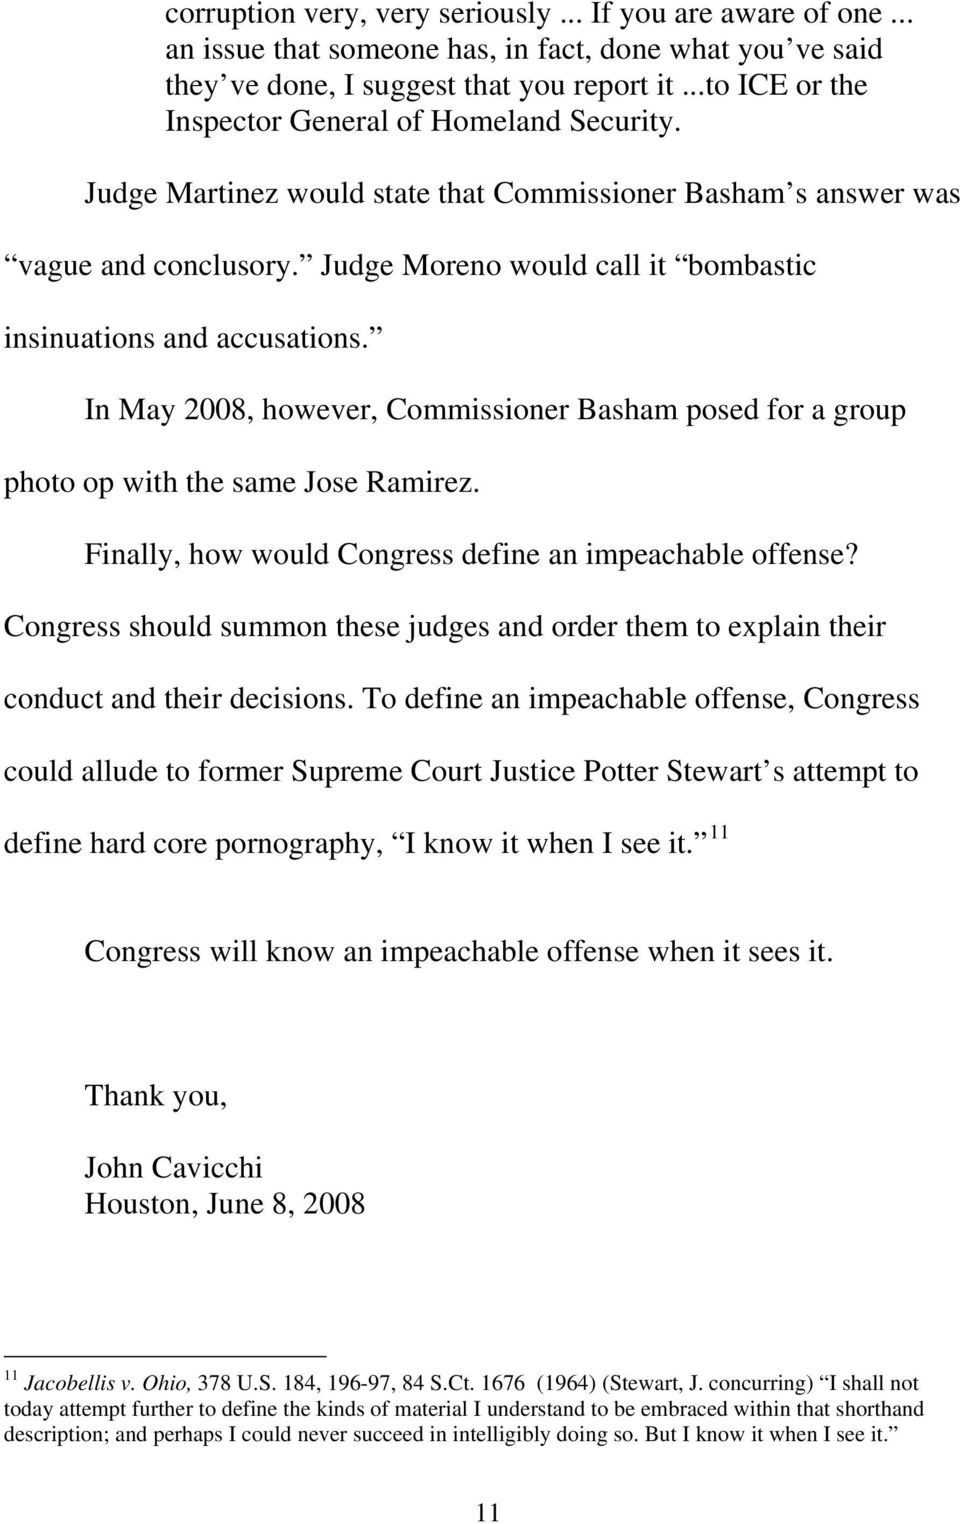 Judge Moreno would call it bombastic insinuations and accusations. In May 2008, however, Commissioner Basham posed for a group photo op with the same Jose Ramirez.